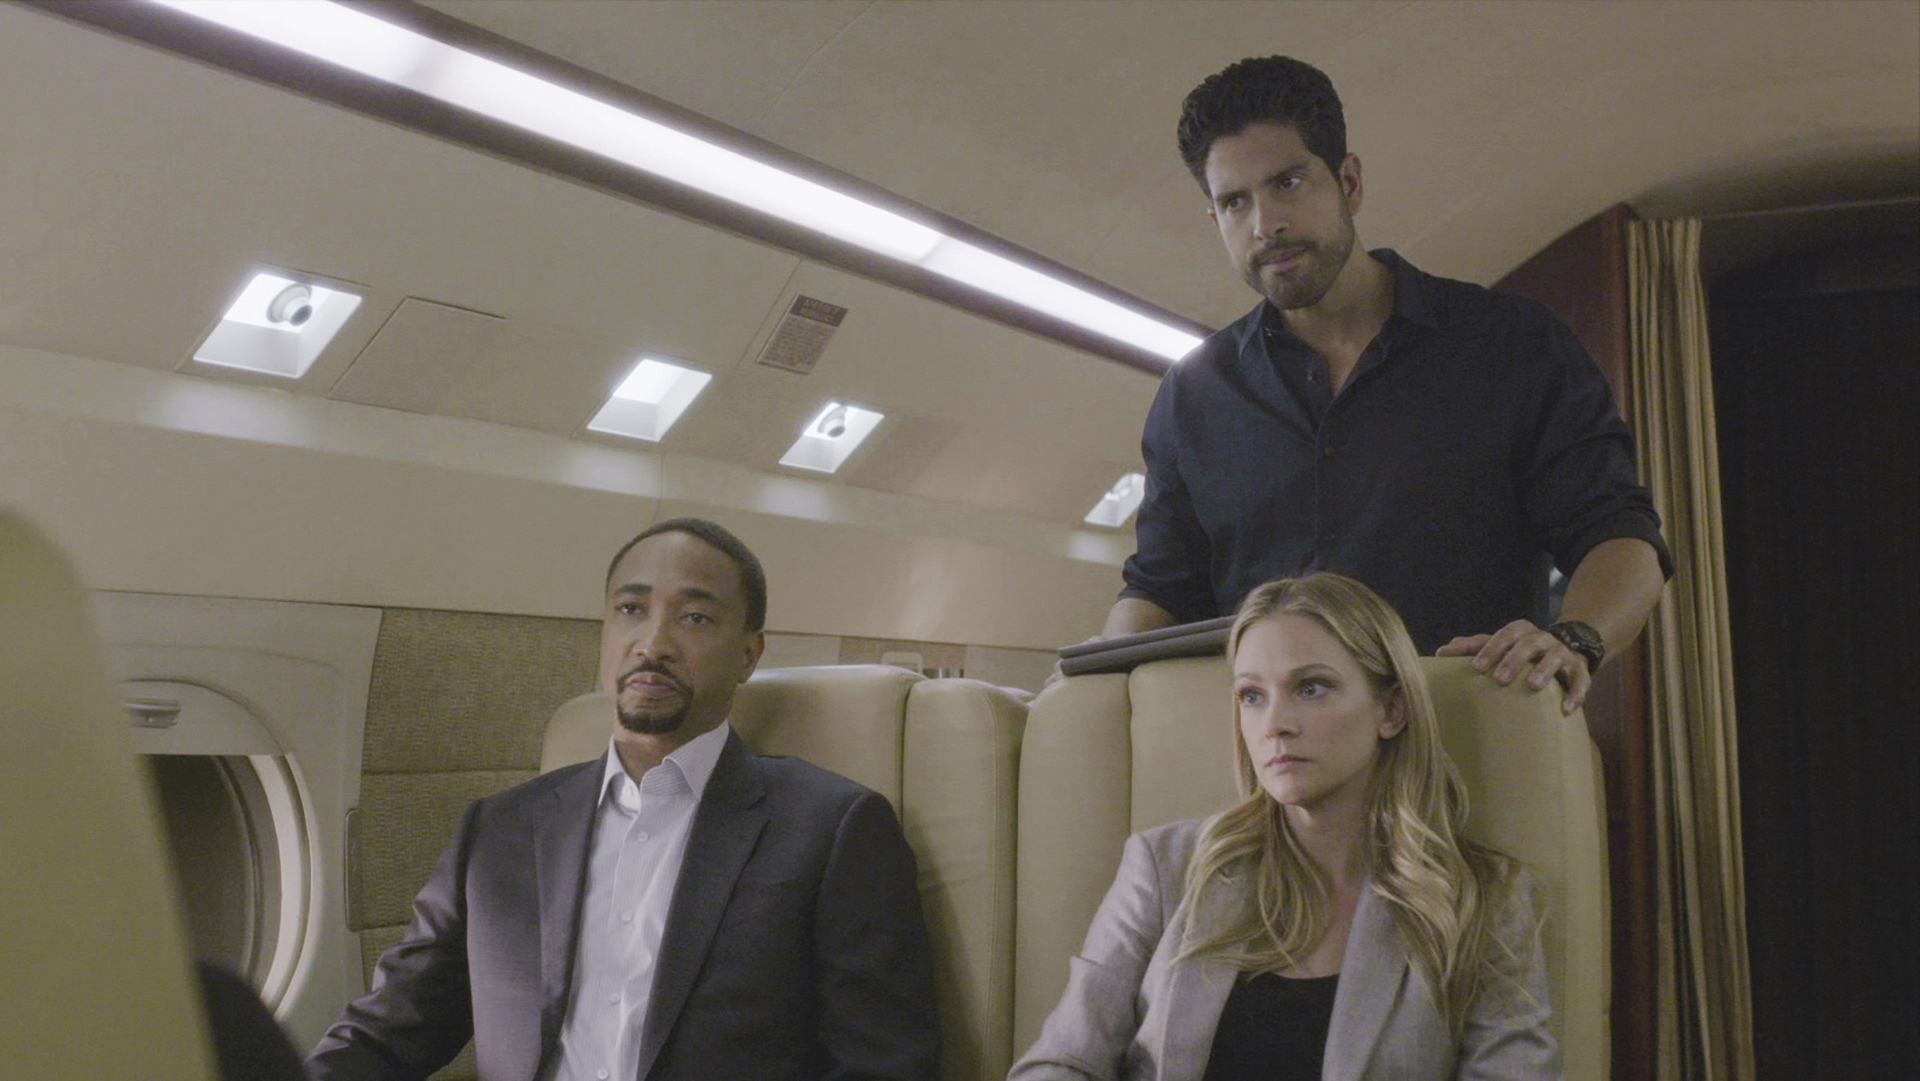 Agent Walker, JJ, and Agent Alvez explore ideas on the jet.